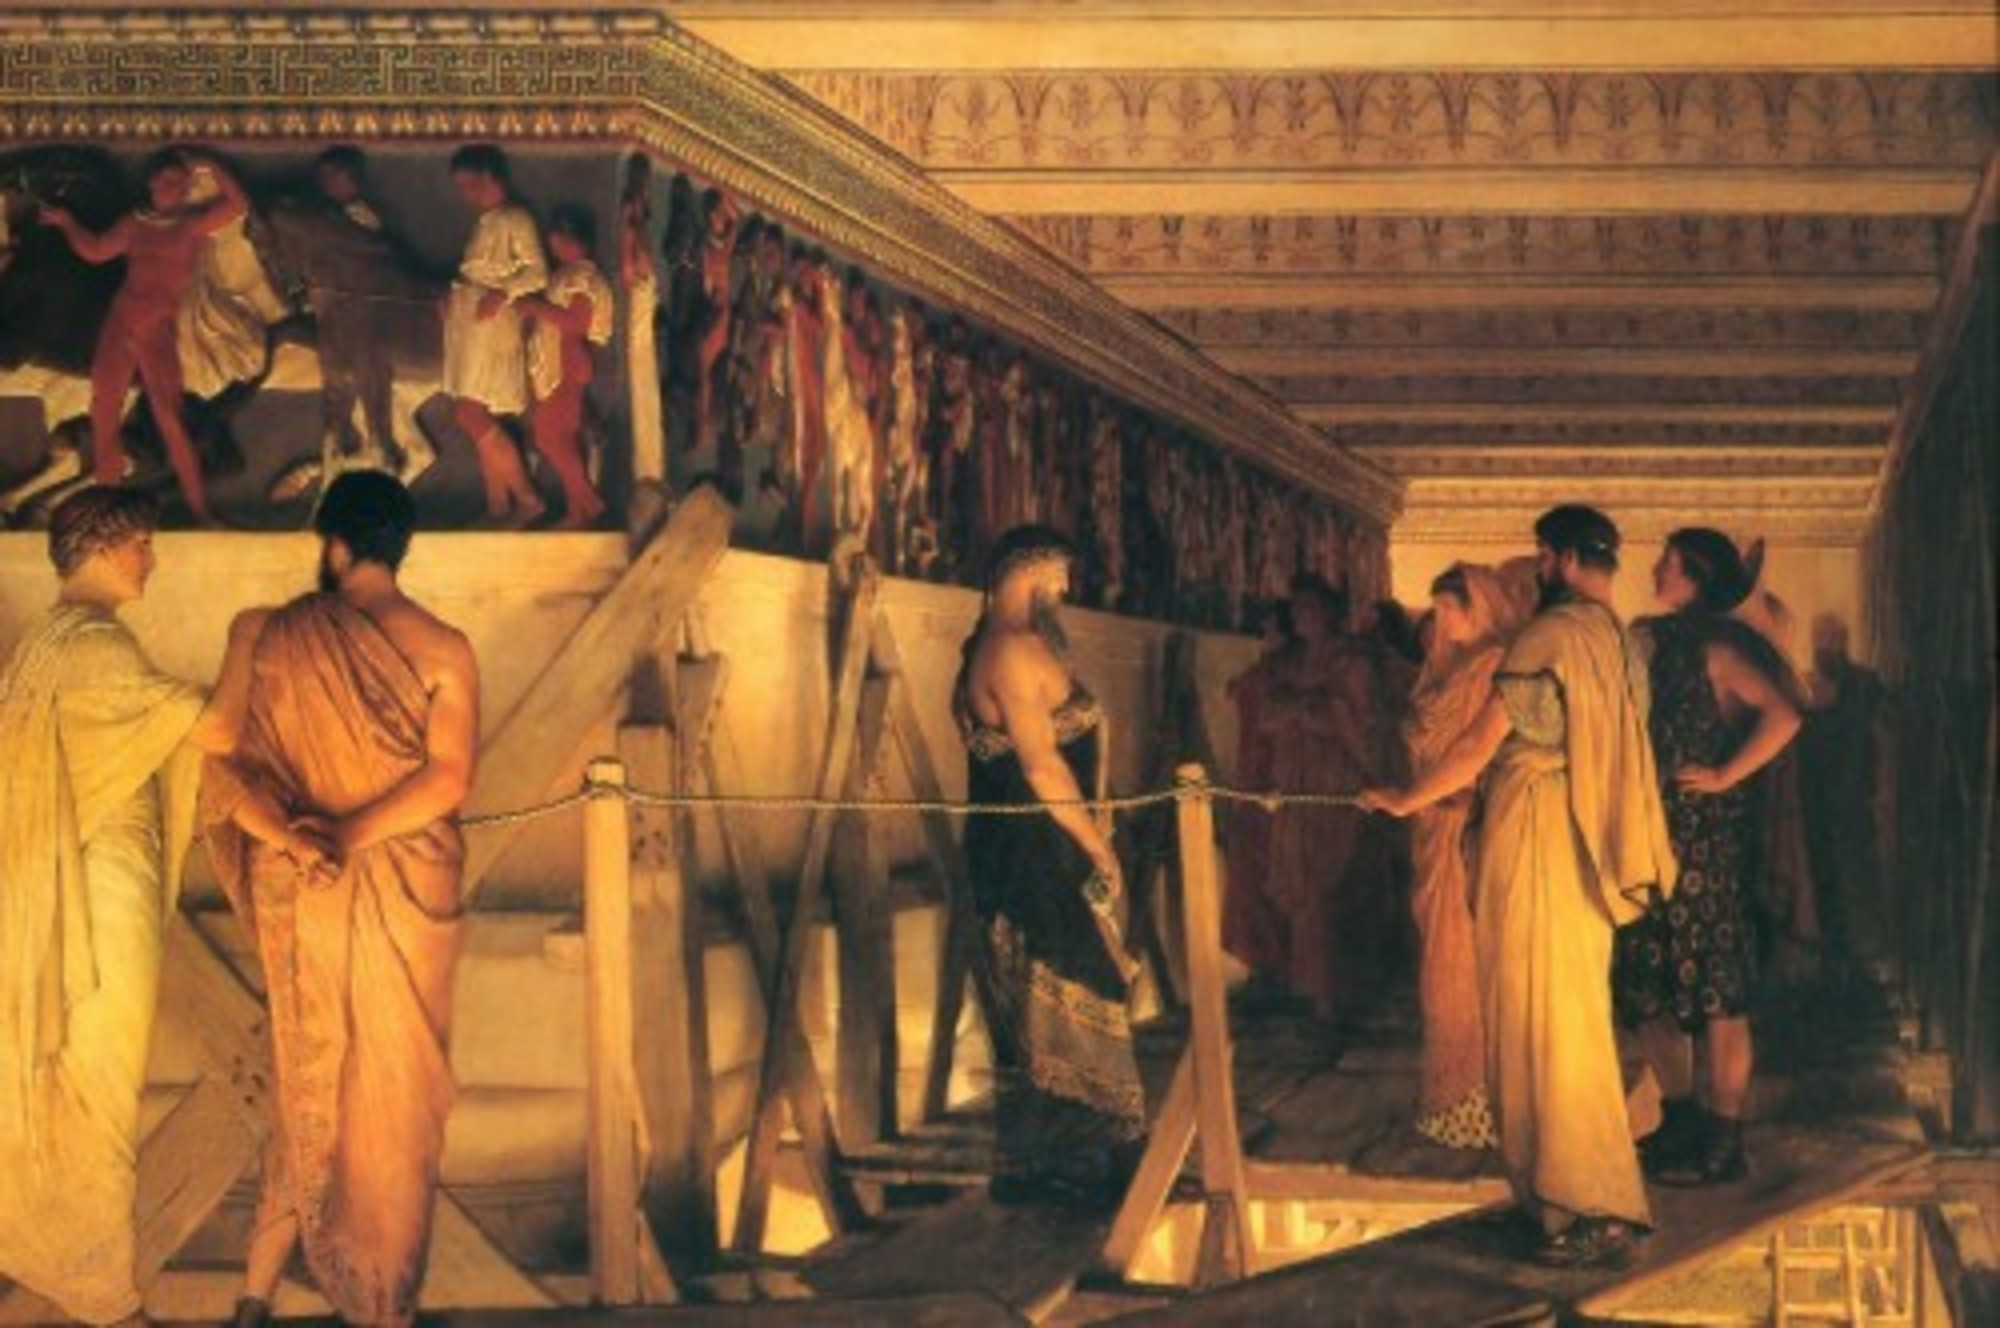 1868-Lawrence-Alma-Tadema---Phidias-Showing-the-Frieze-of-the-Parthenon-to-his-Friends.jpg